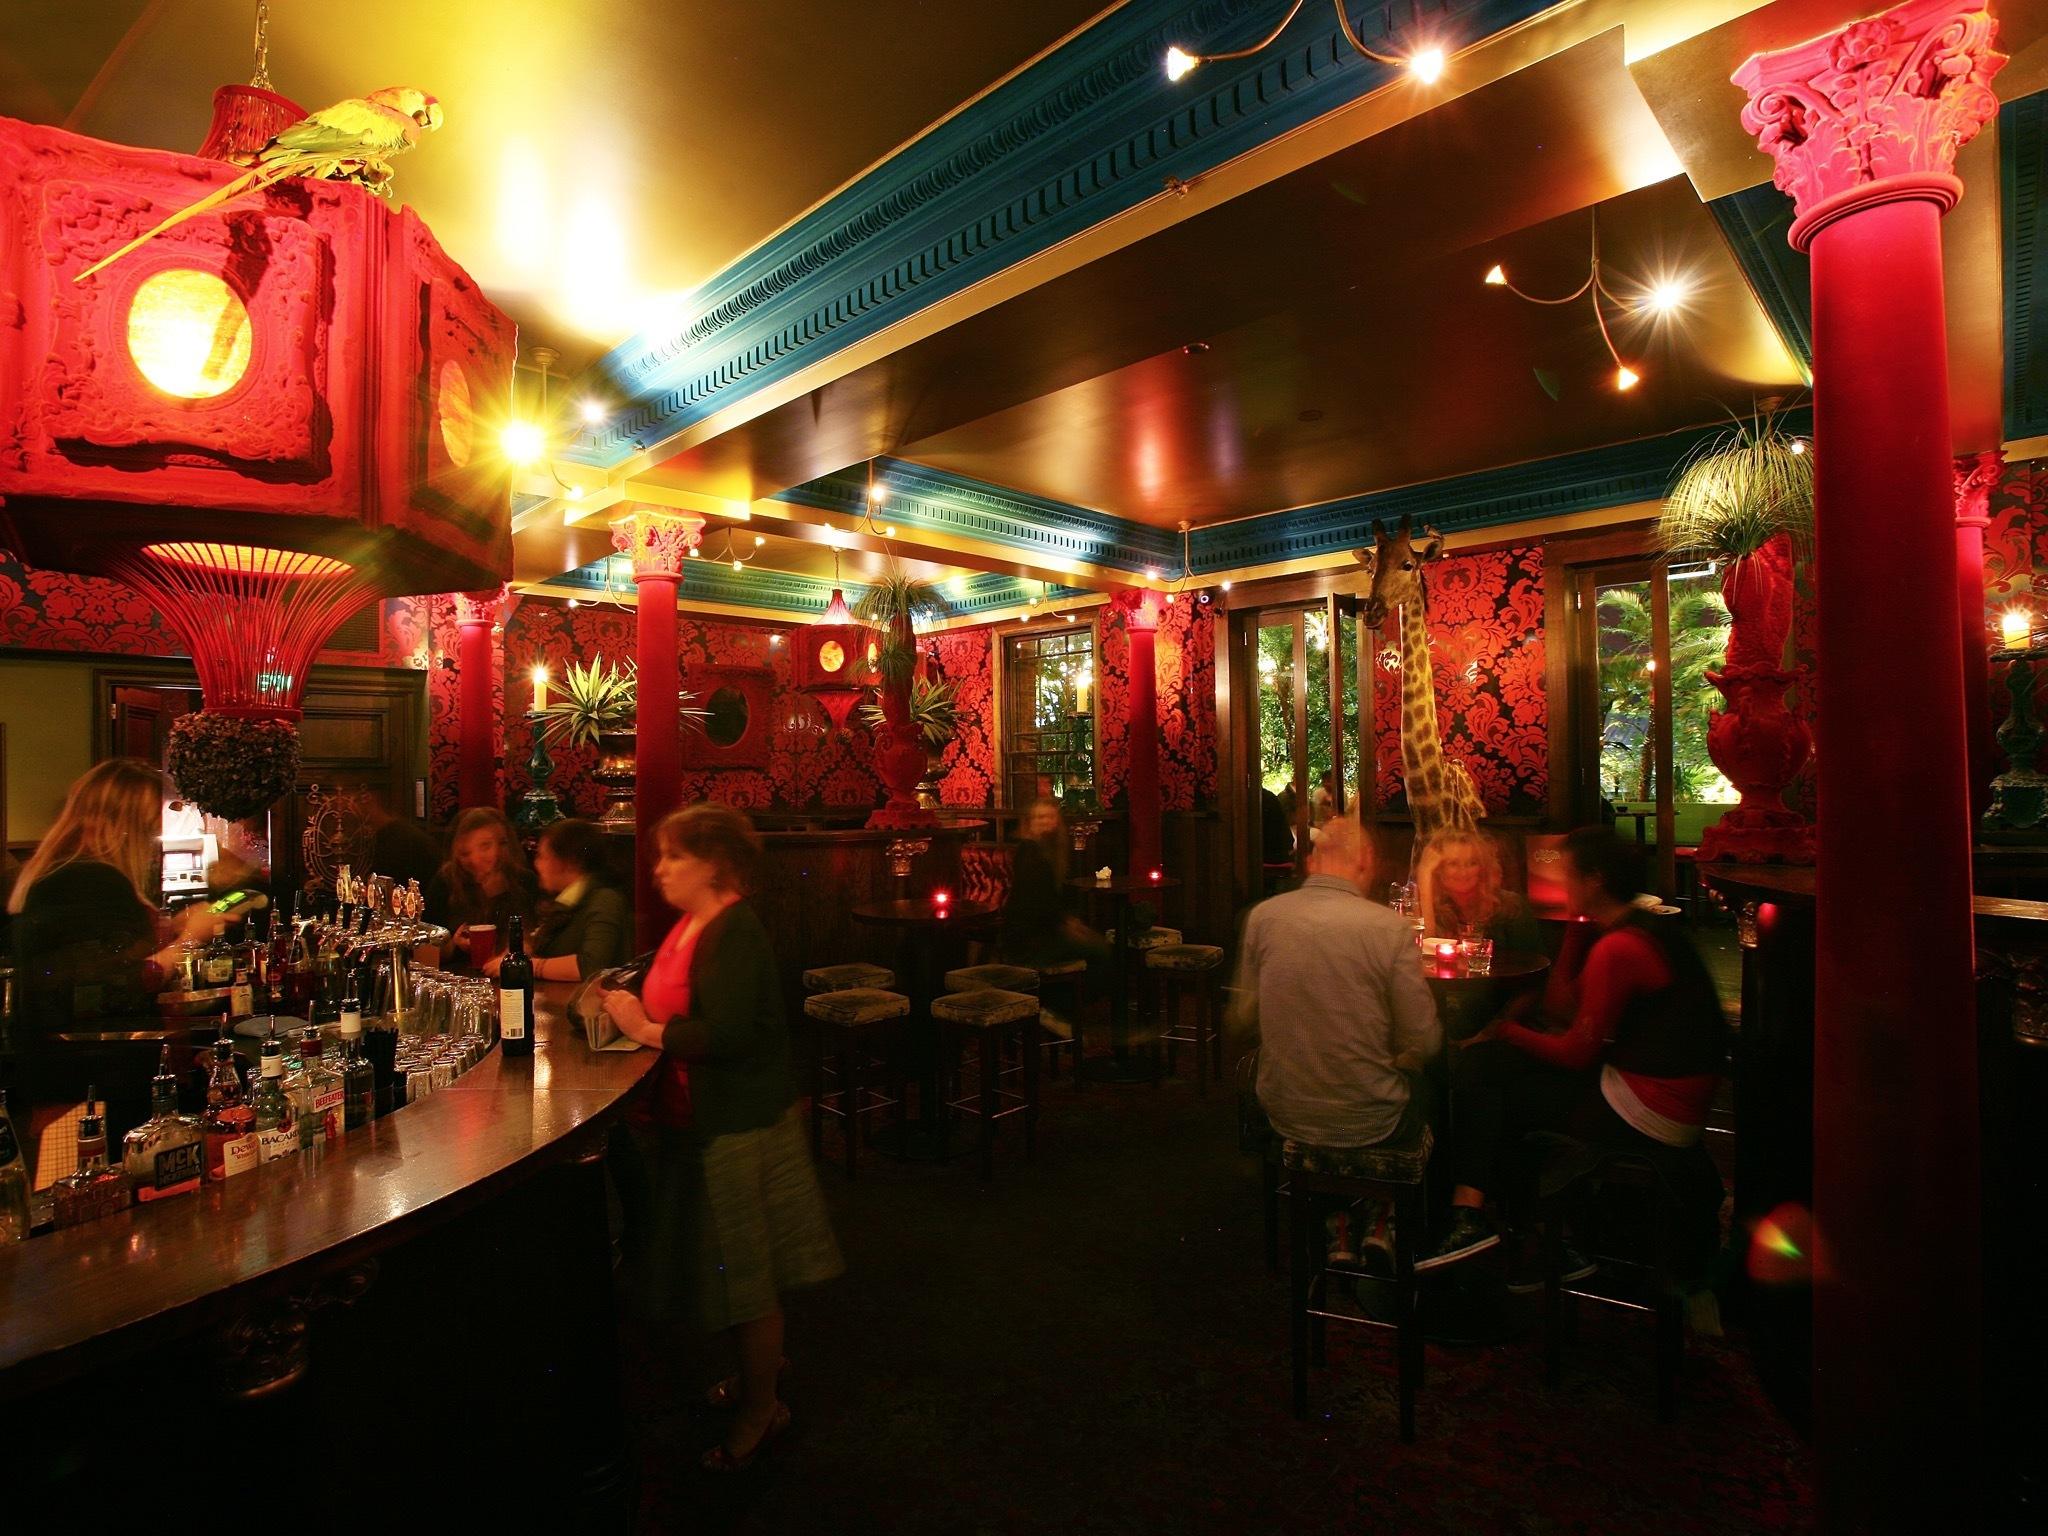 An interior shot of the bar area at Carlton Club showing people